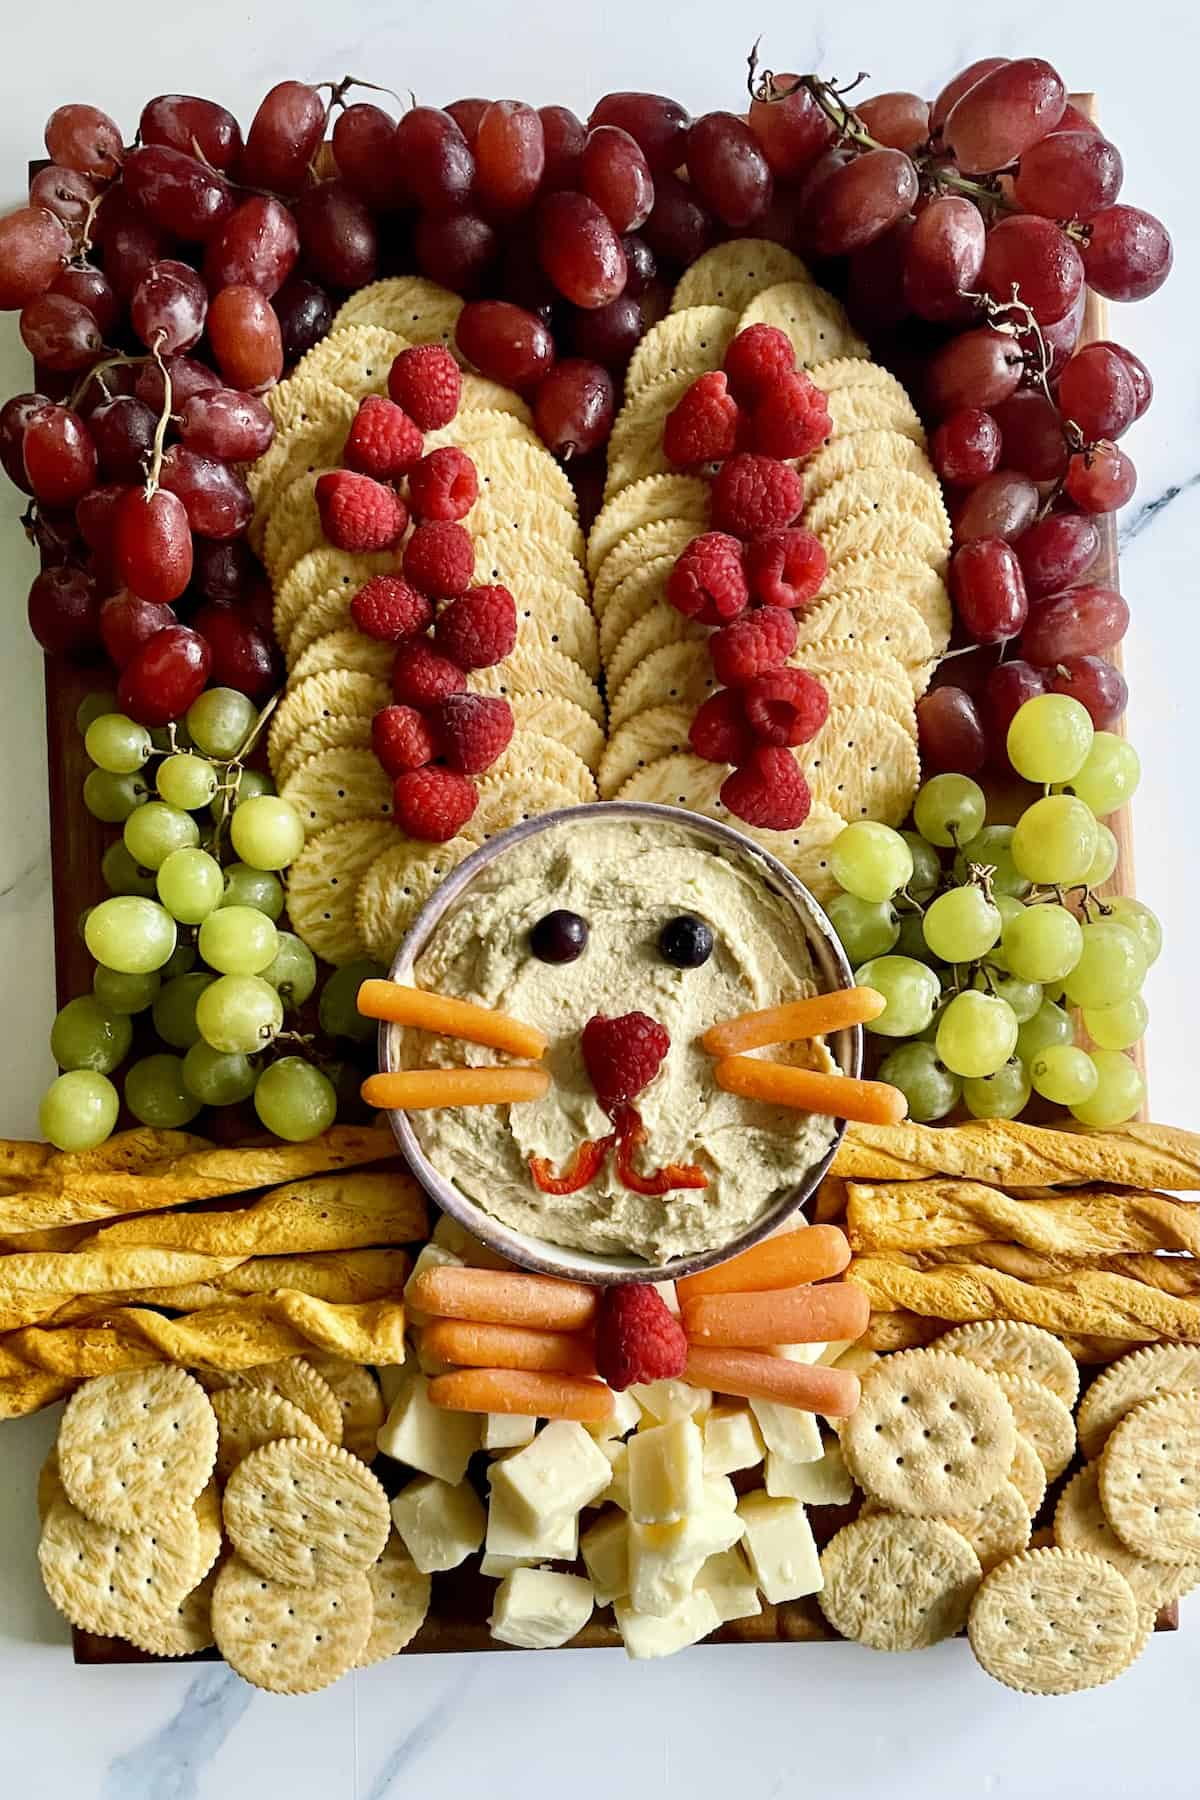 Easter Bunny platter shaped into the bunny with fruits, veggies, crackers, and cheese